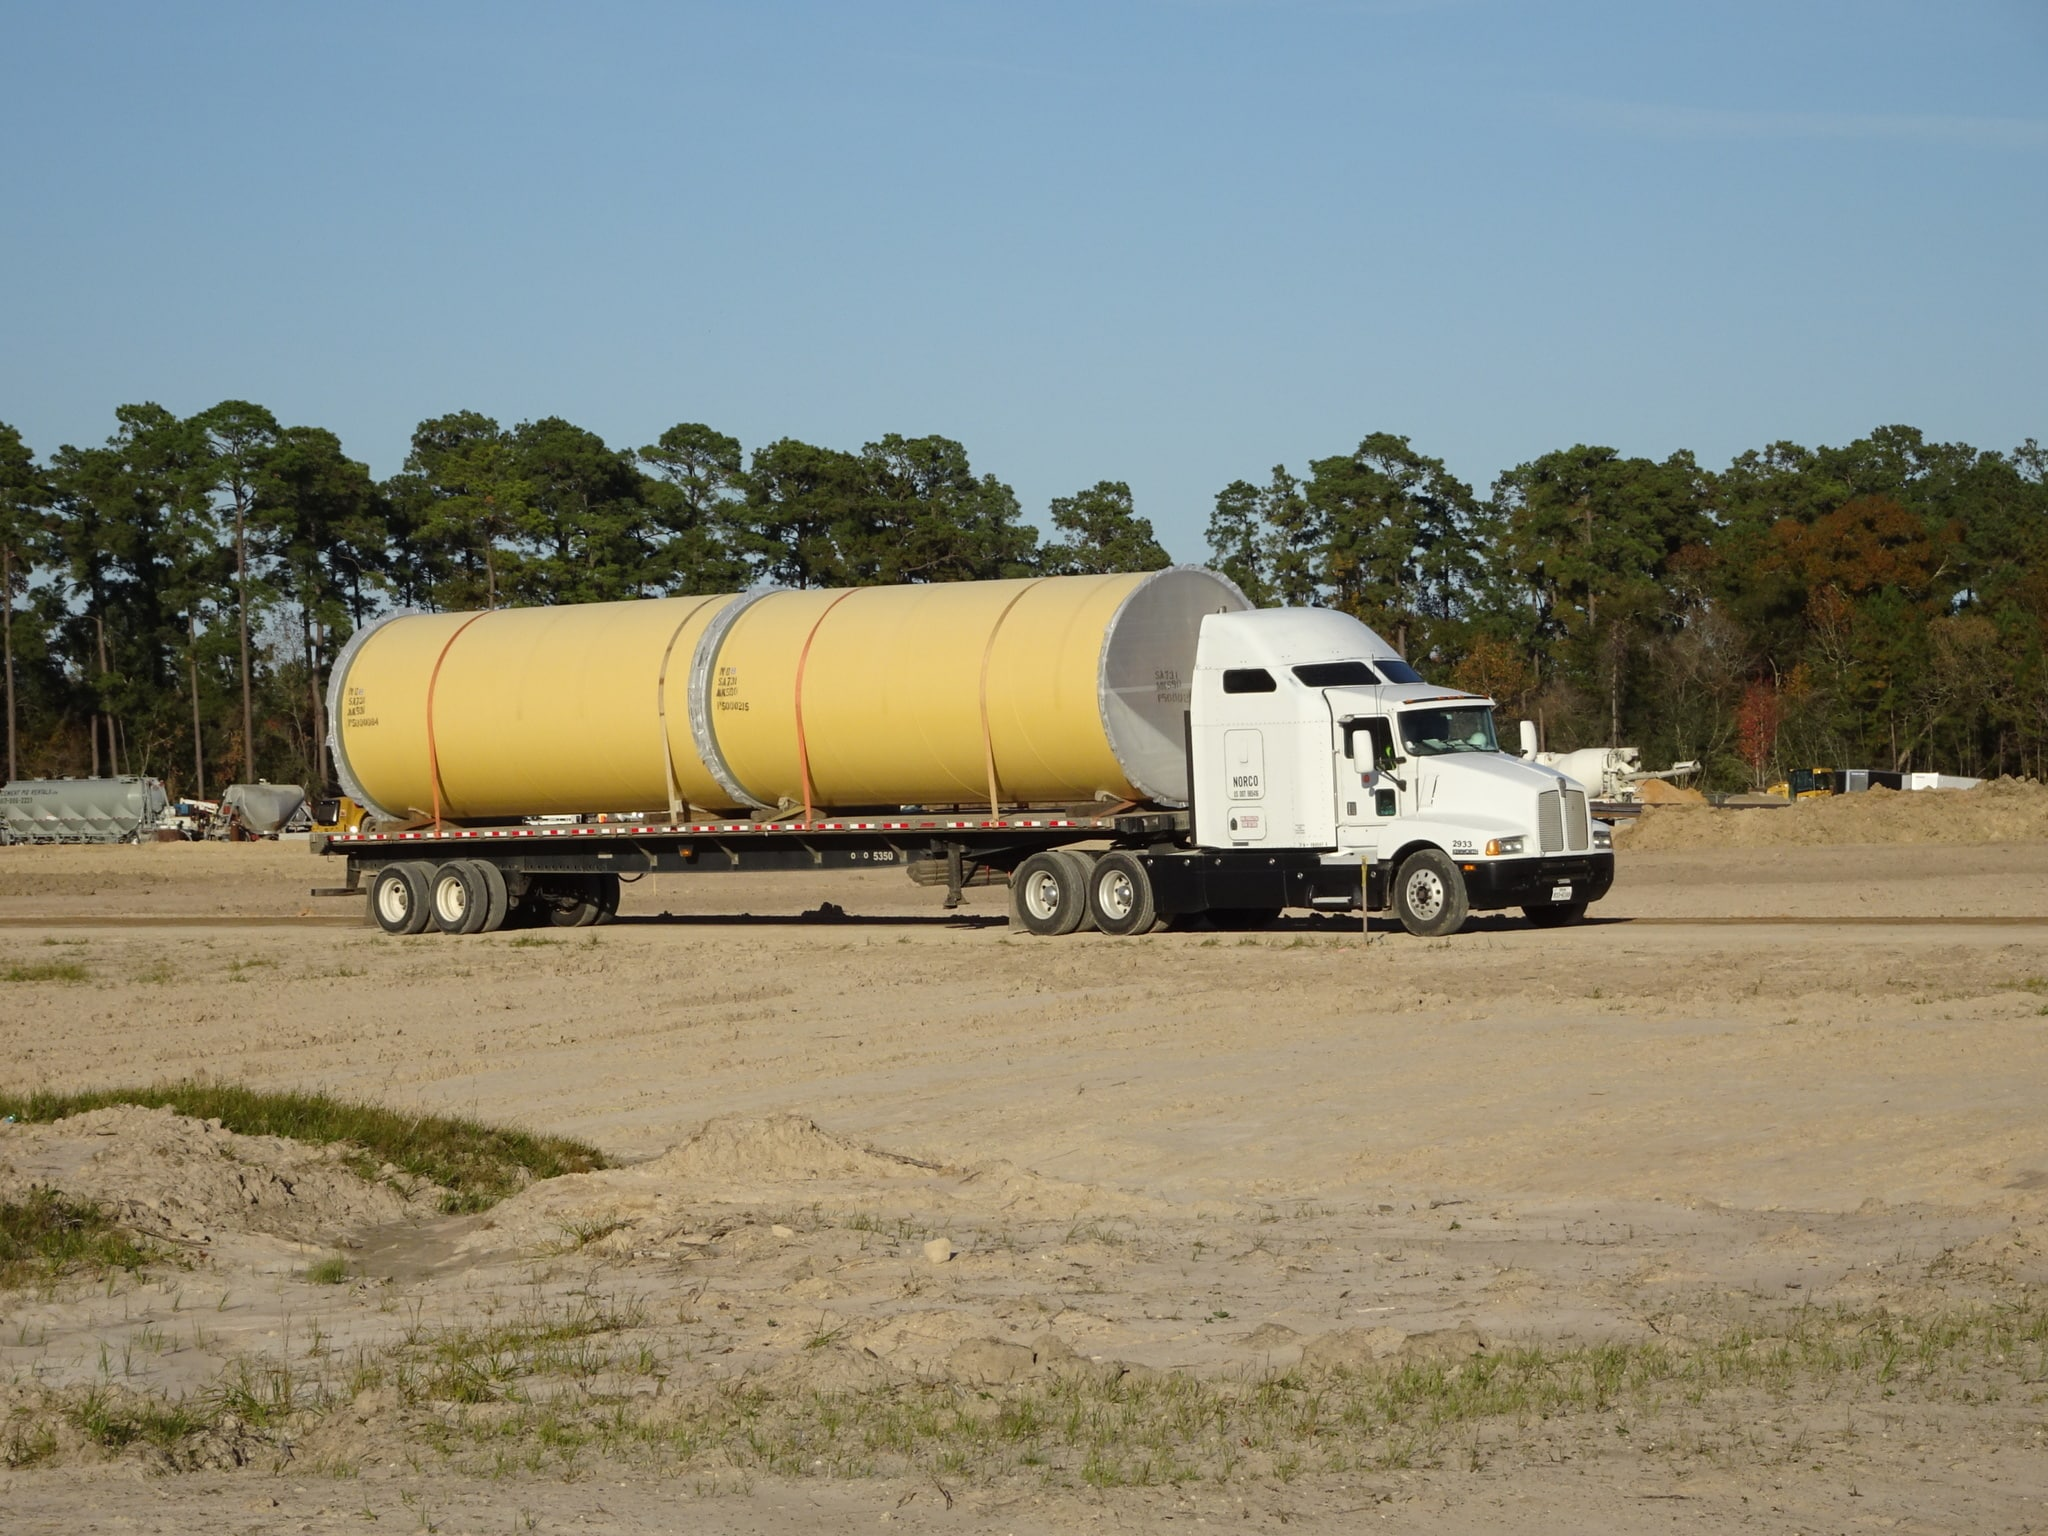 Truck hauling the 108 inch pipe